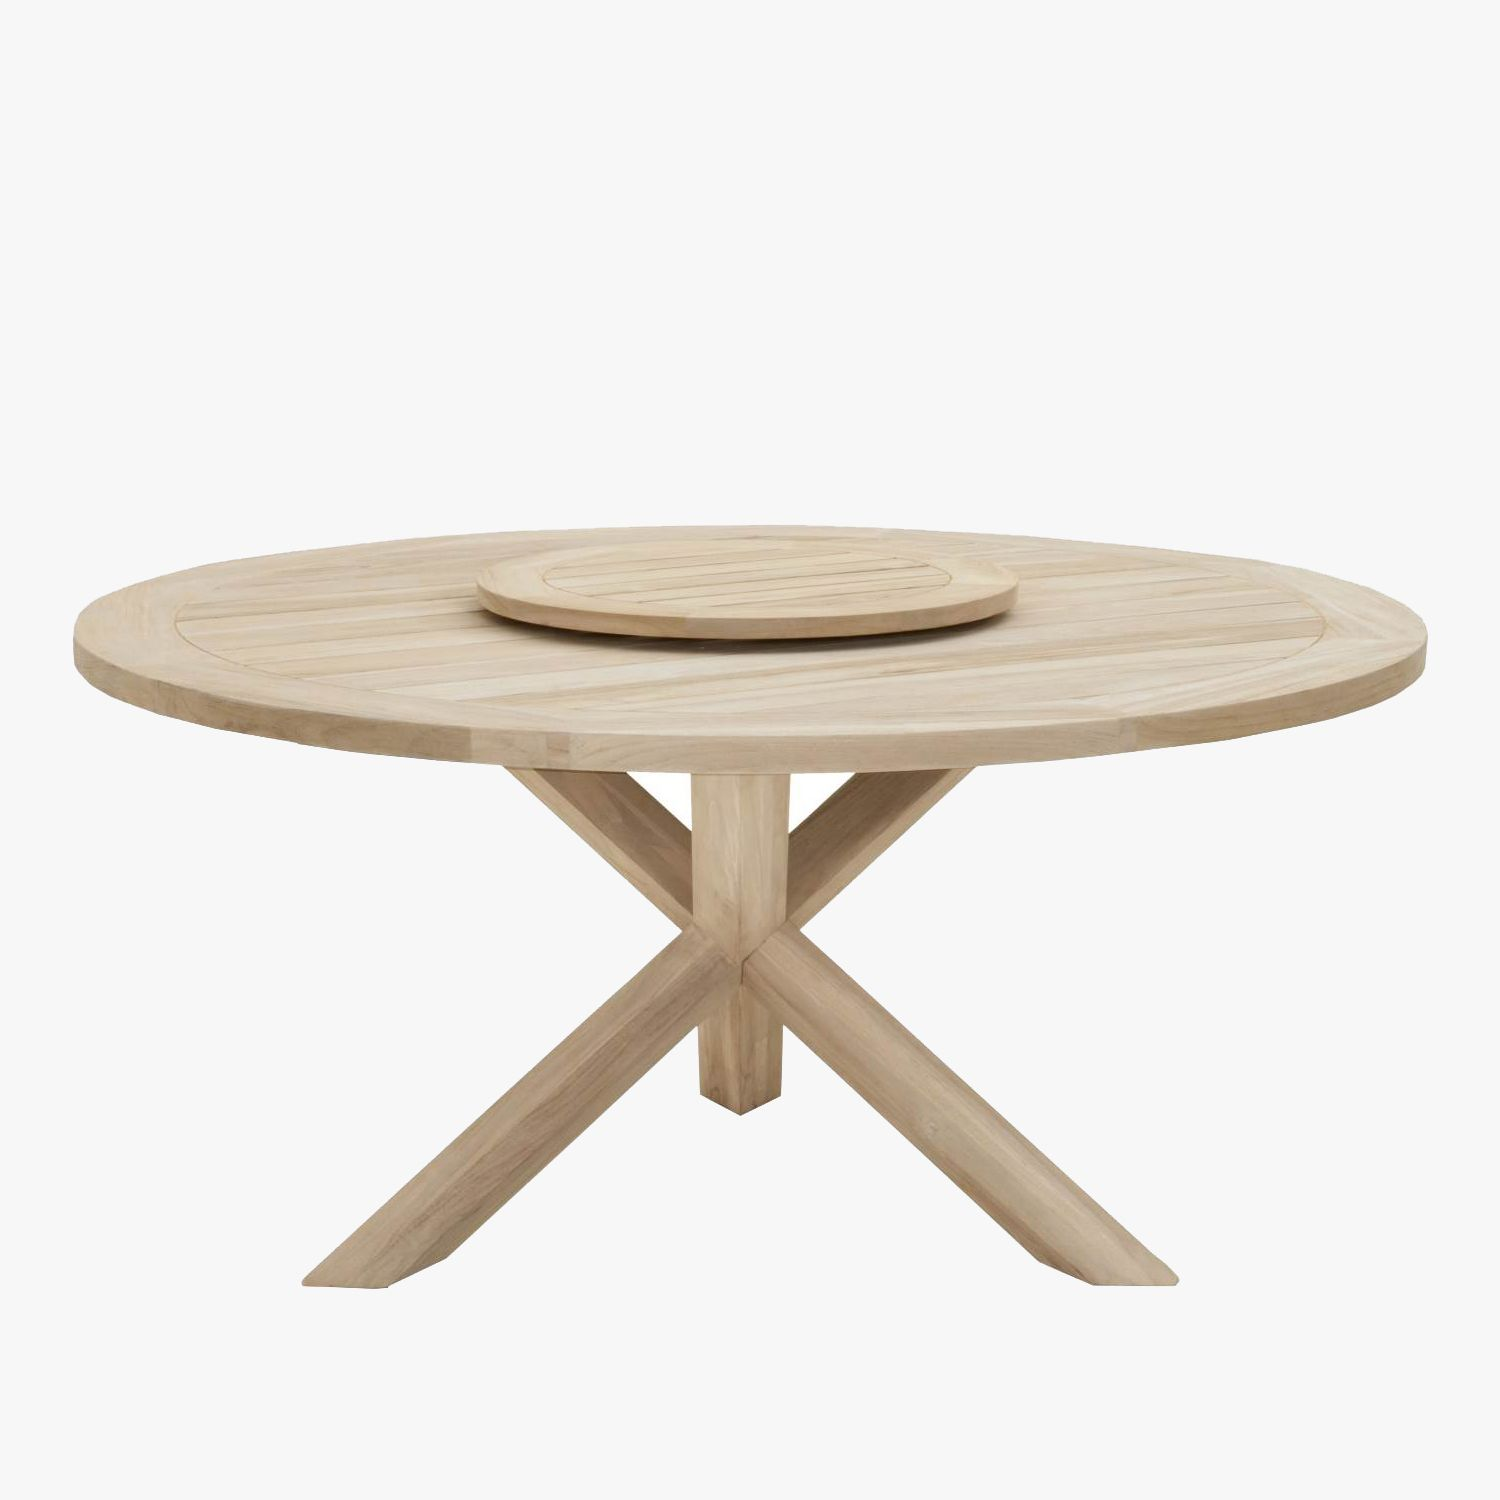 Sumatra Round Outdoor Dining Table Shop Dining Furniture Round